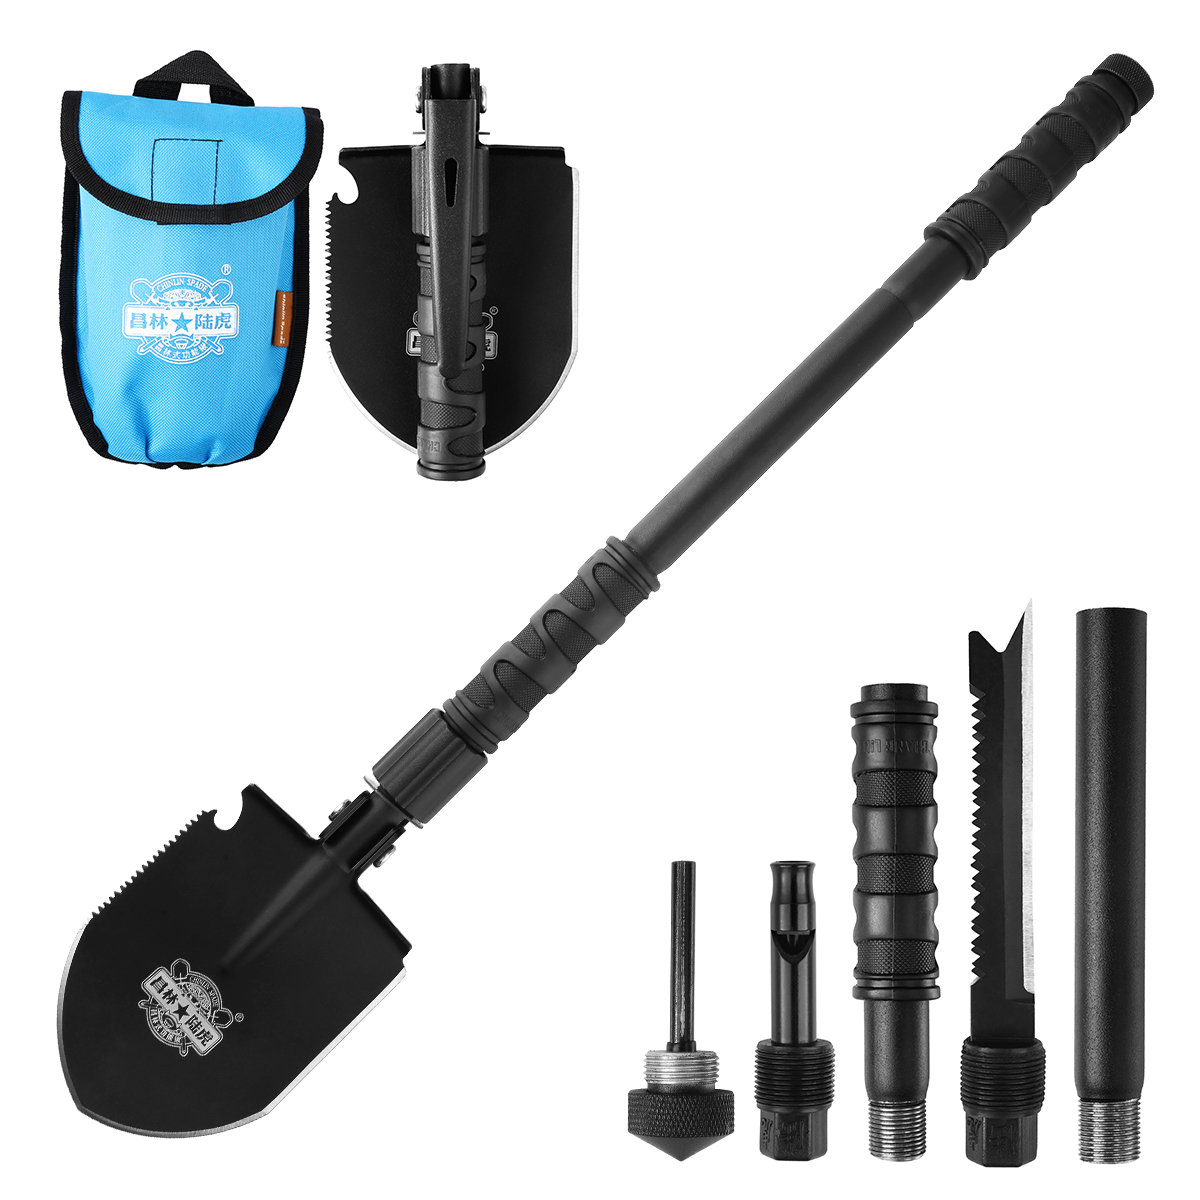 CHANGLIN SPADE 1534 Multi-function Folding Shovel by